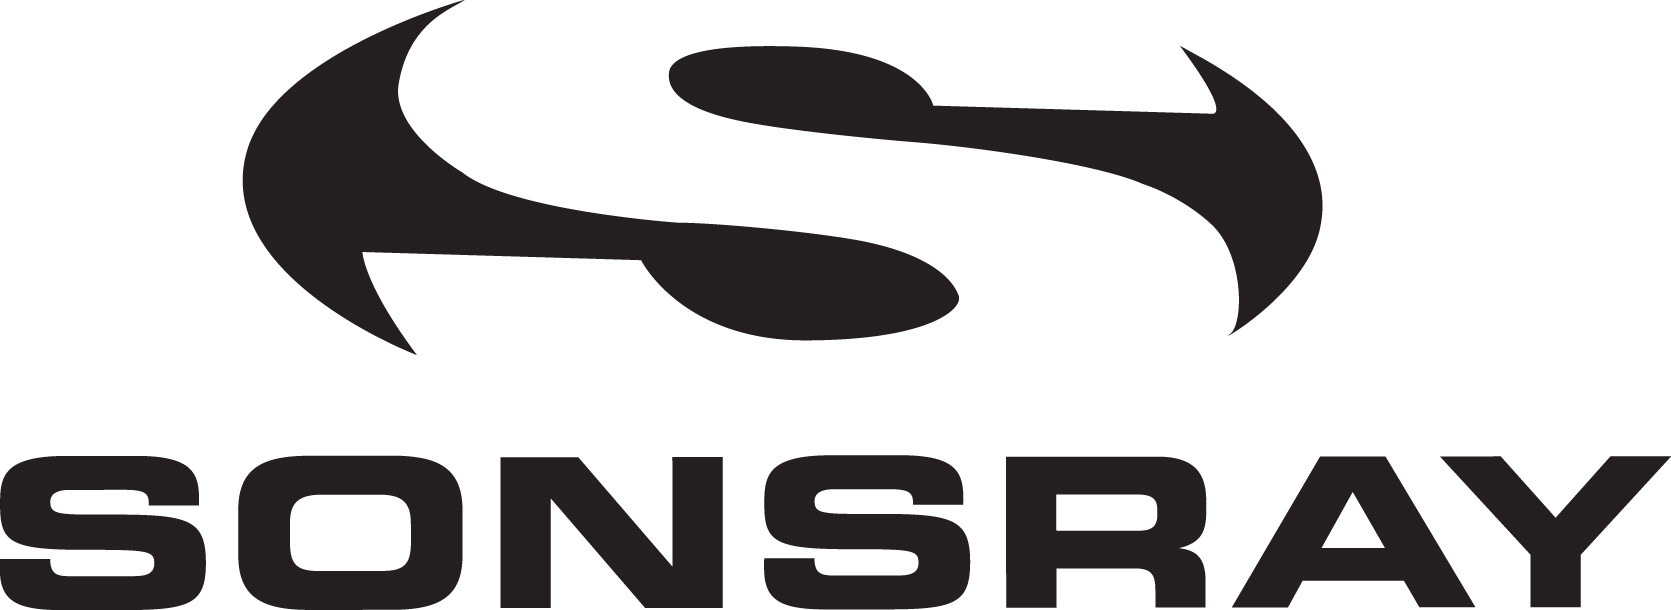 2014: Sonsray Inc Is Founded